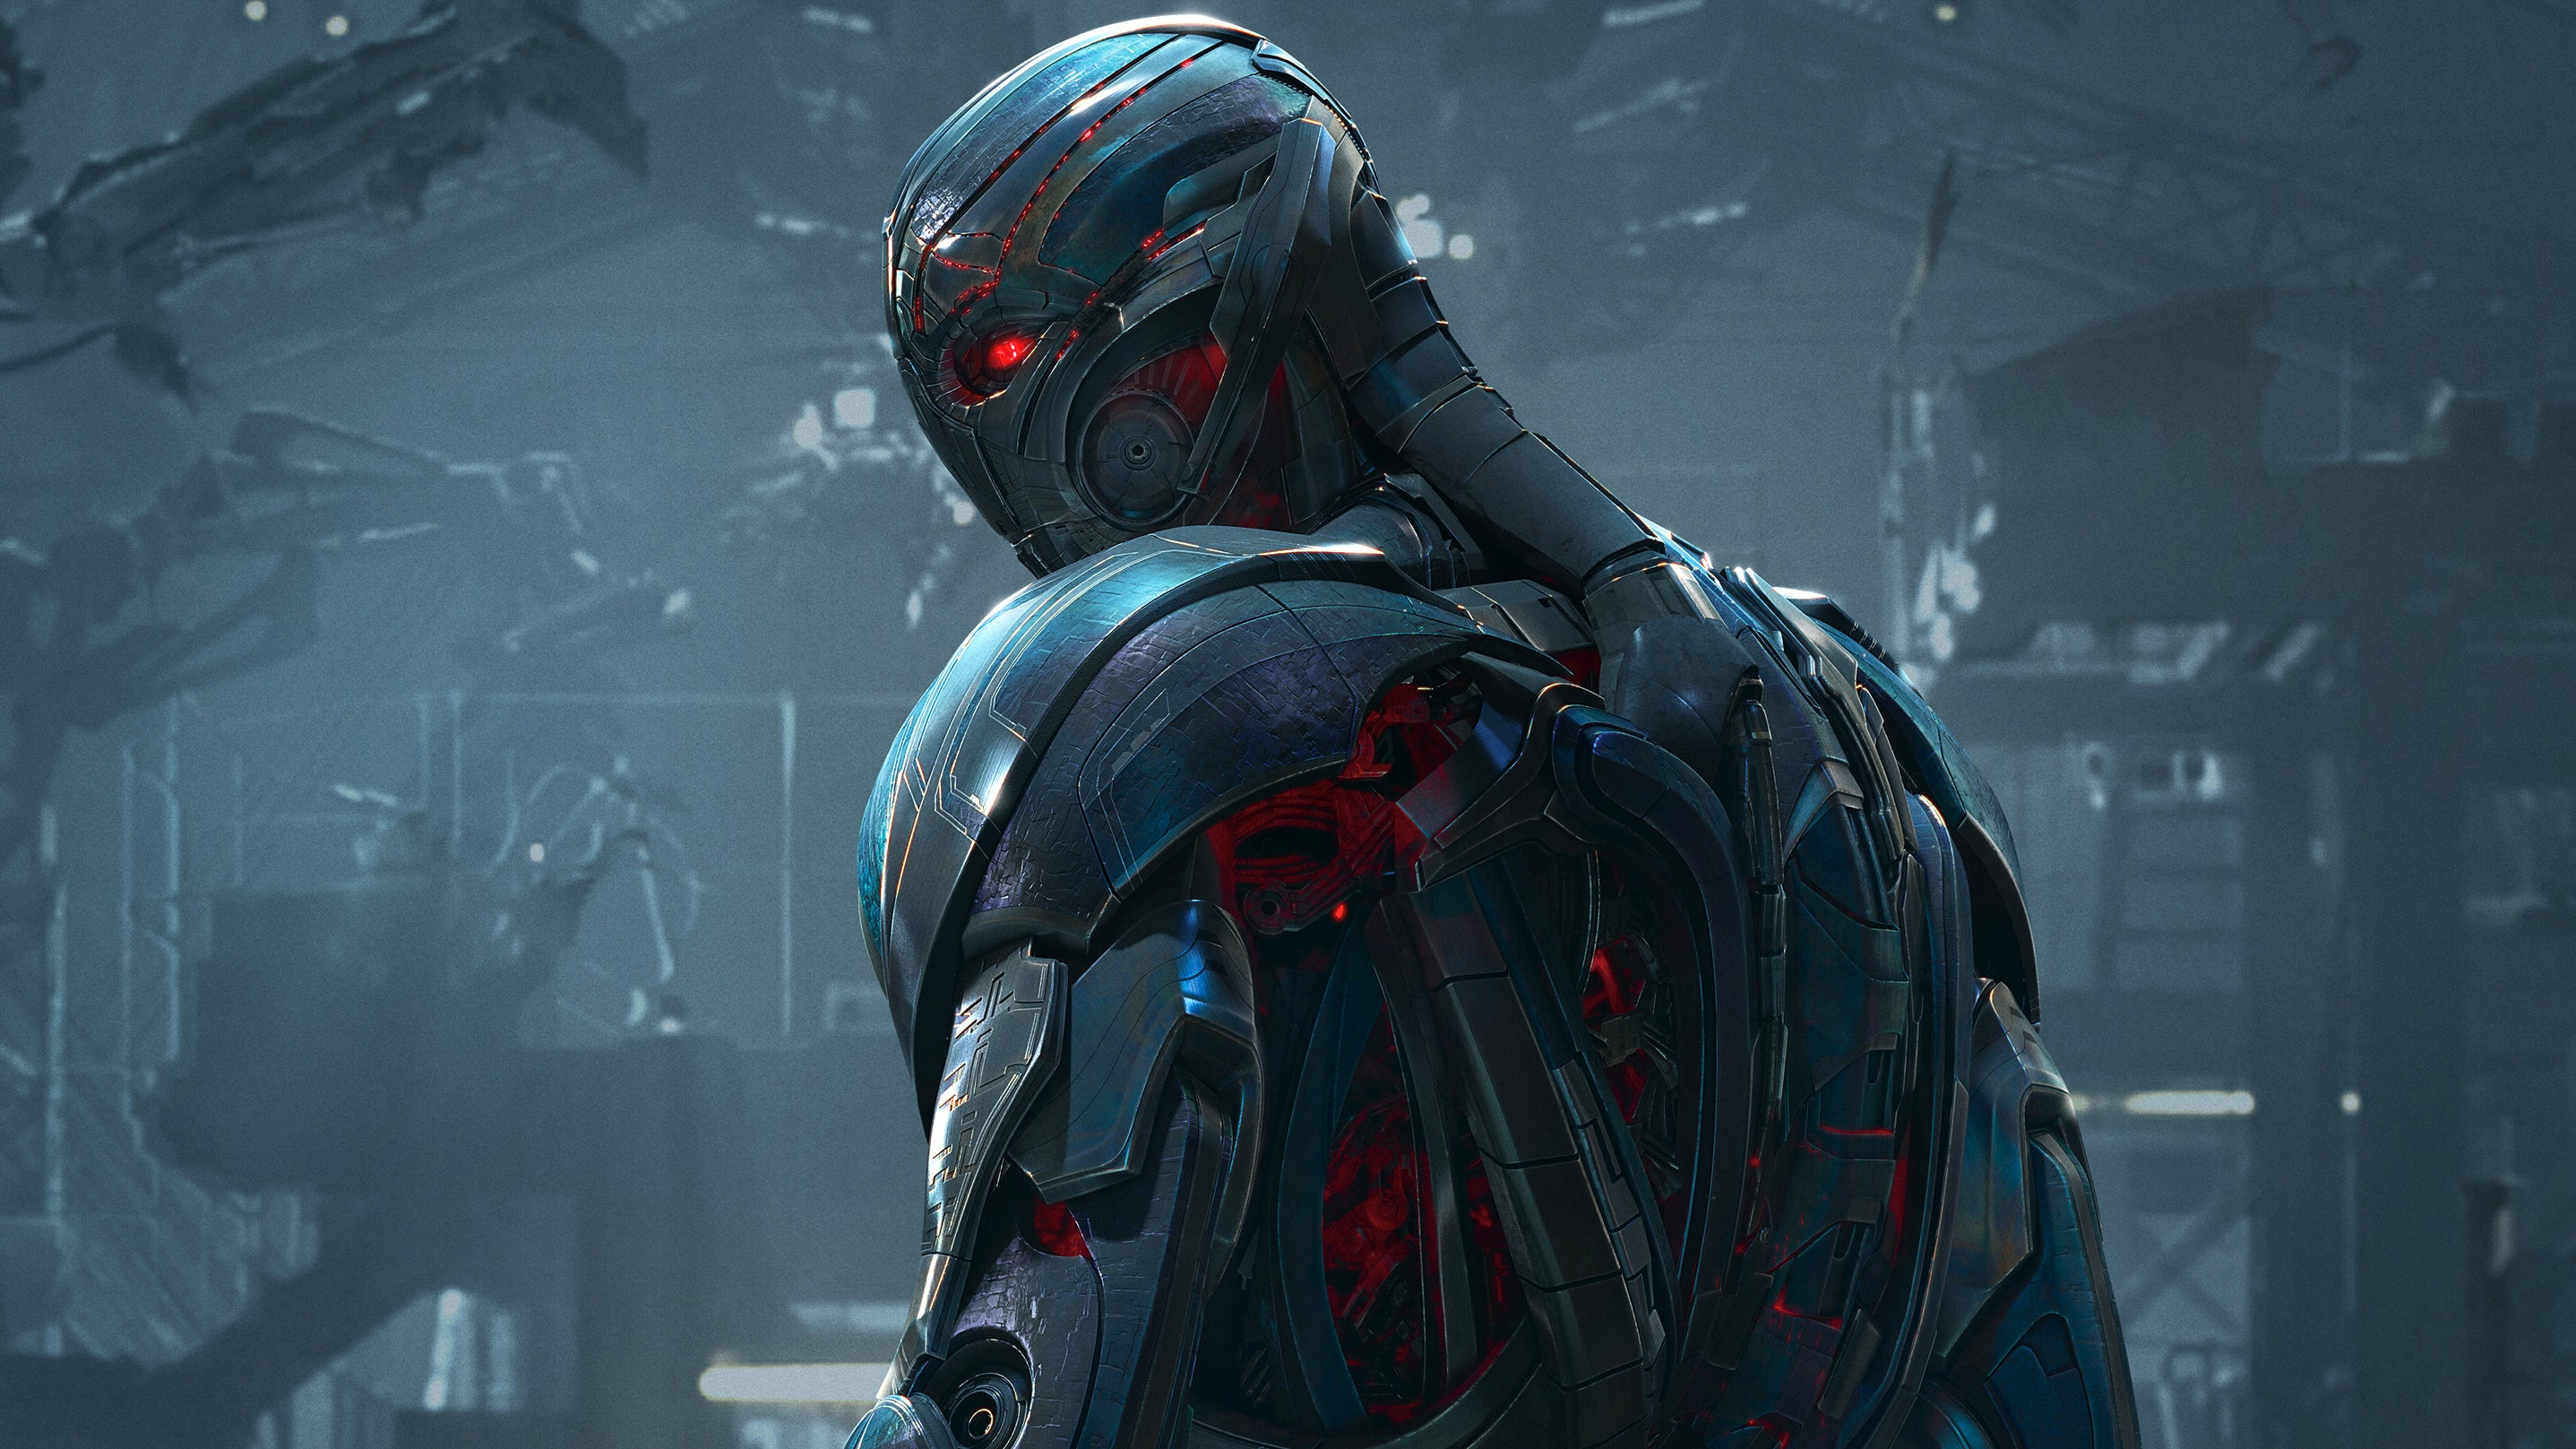 Age Of Ultron Almost Had An Infinitely Cooler Final Battle